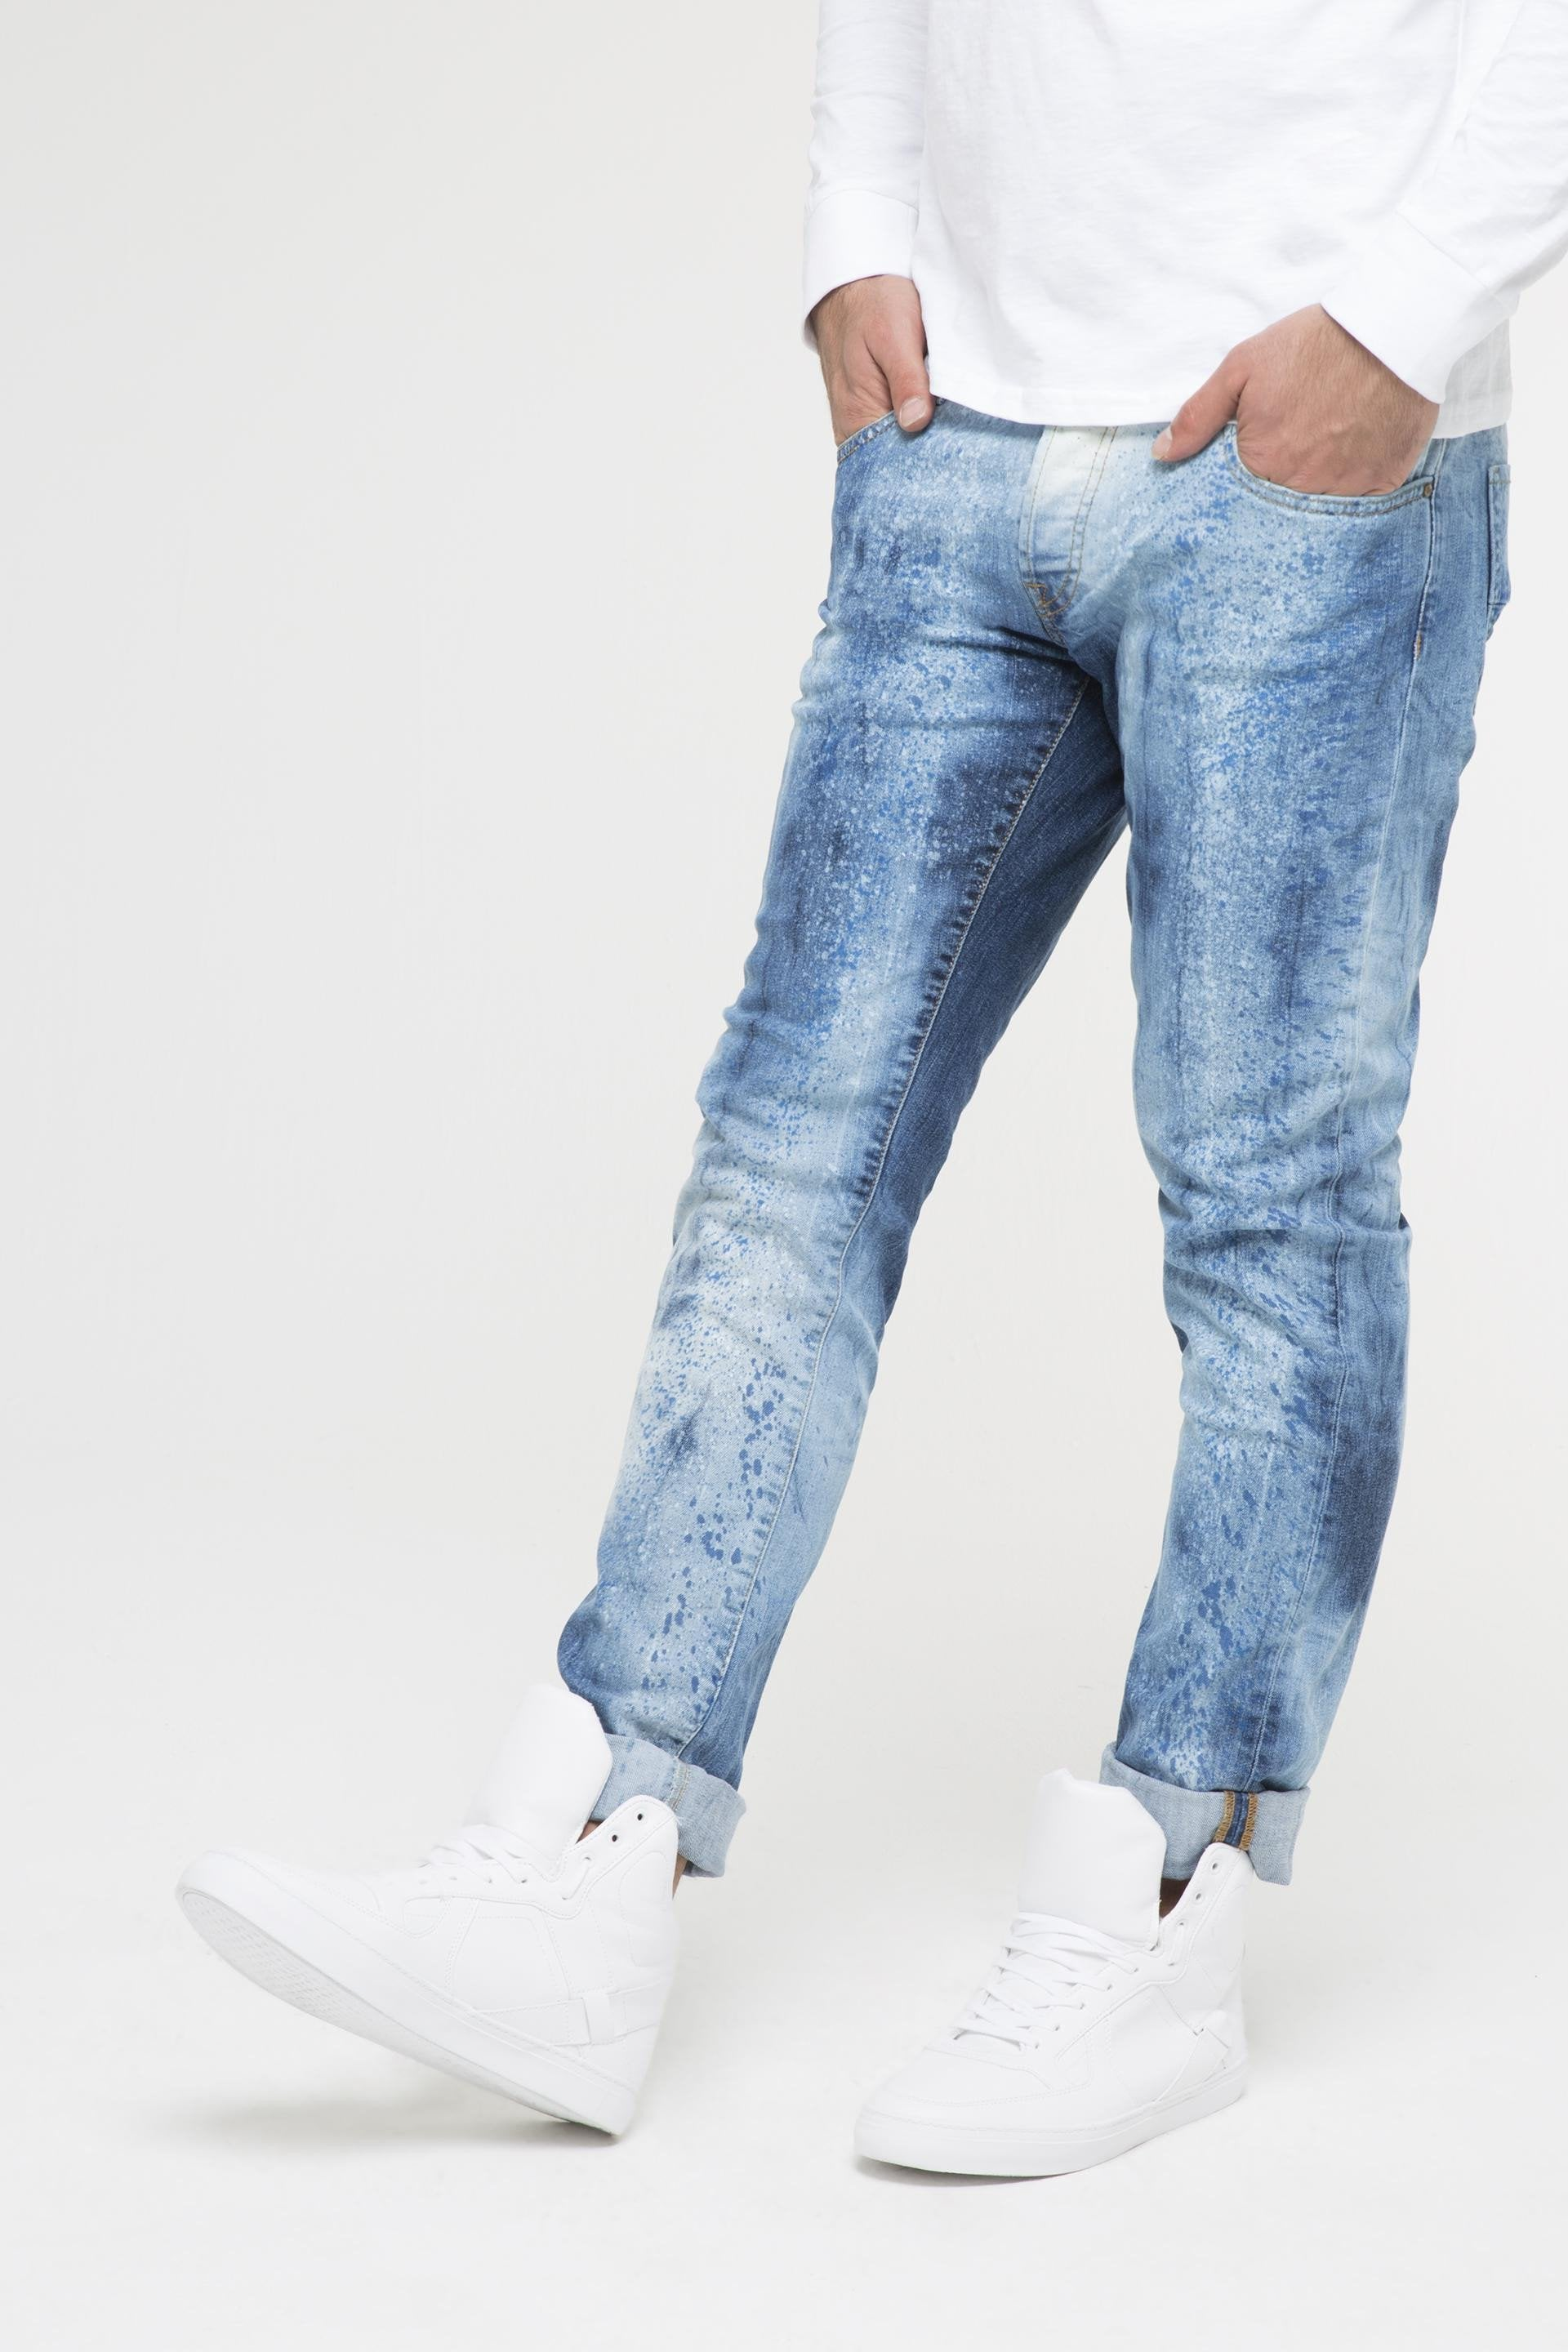 Splattered Paint Jeans